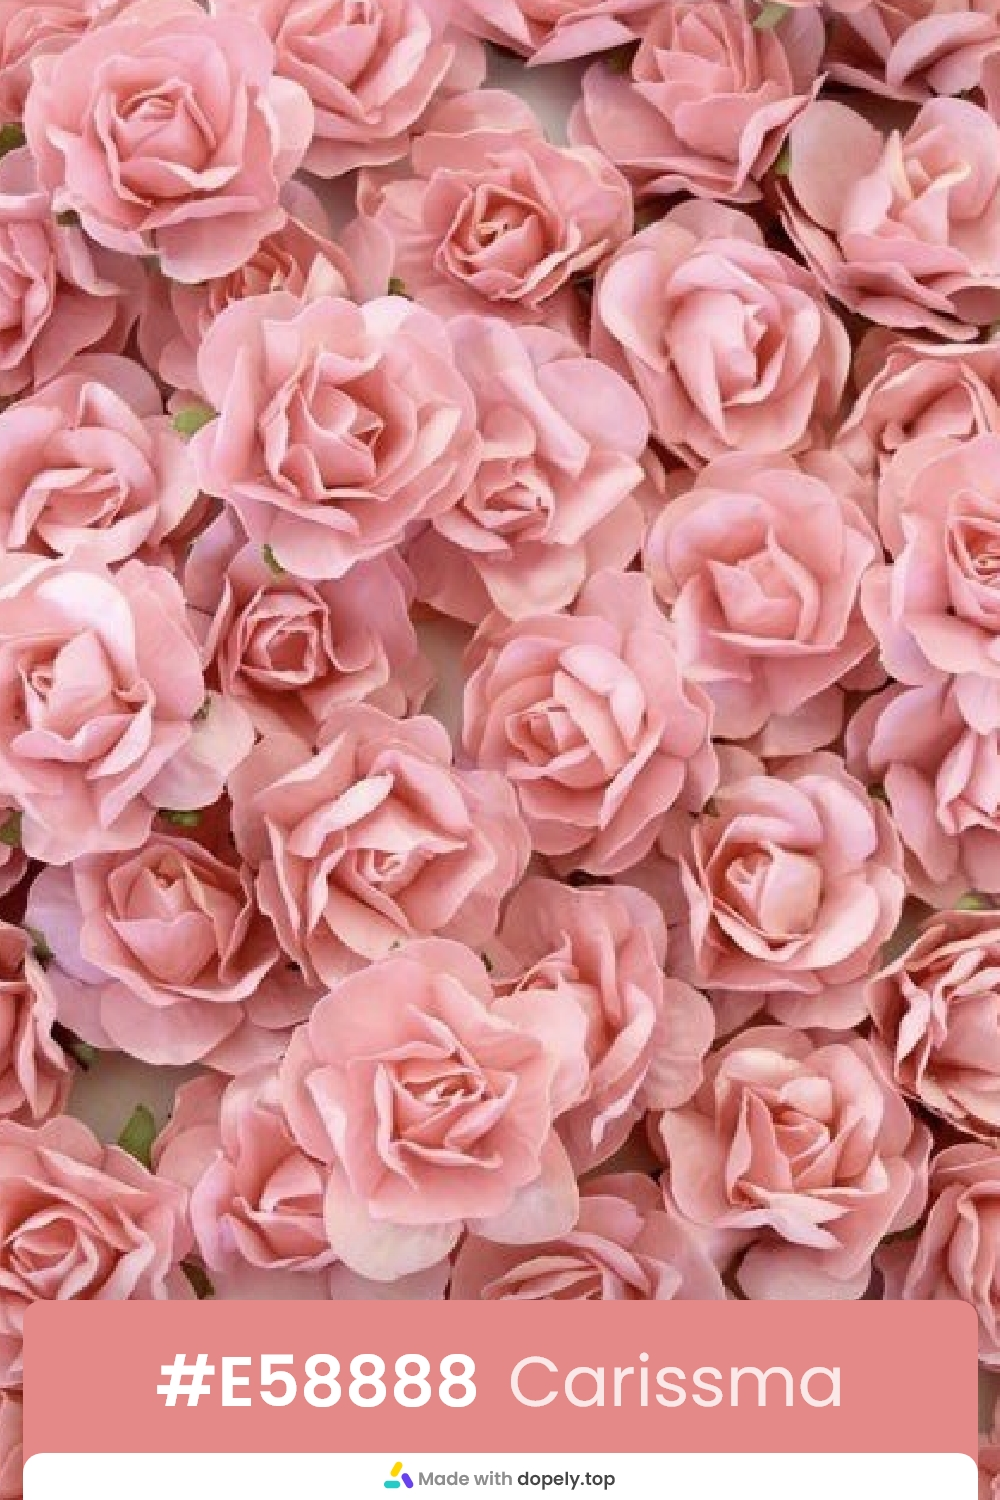 carissma color rose flower meaning with hex code